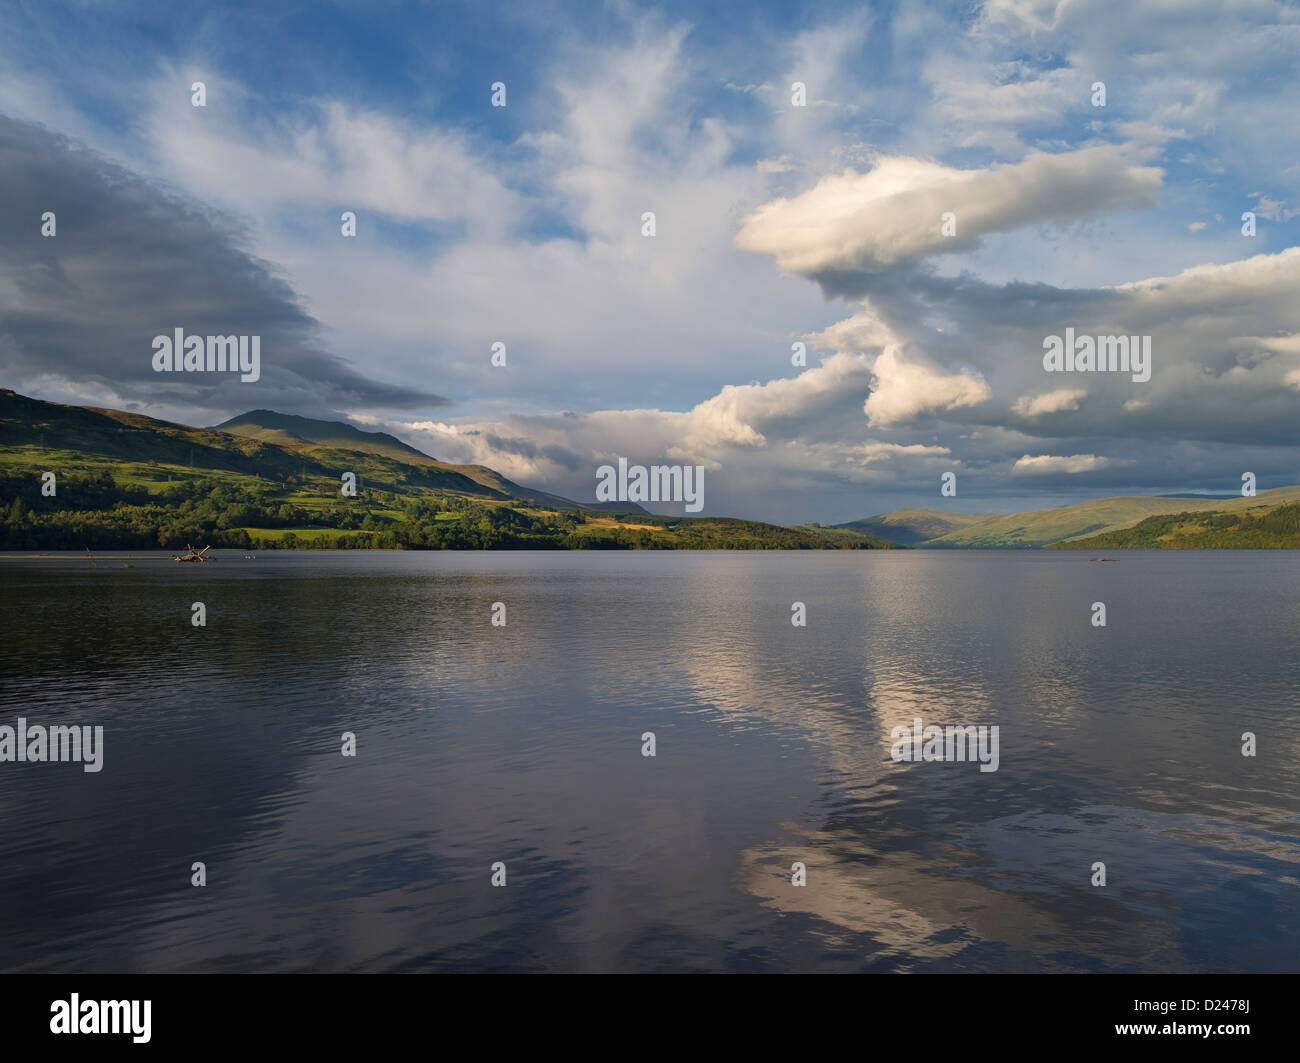 Evening thunderhead cloud rises over calm lake with distant hills - Stock Image